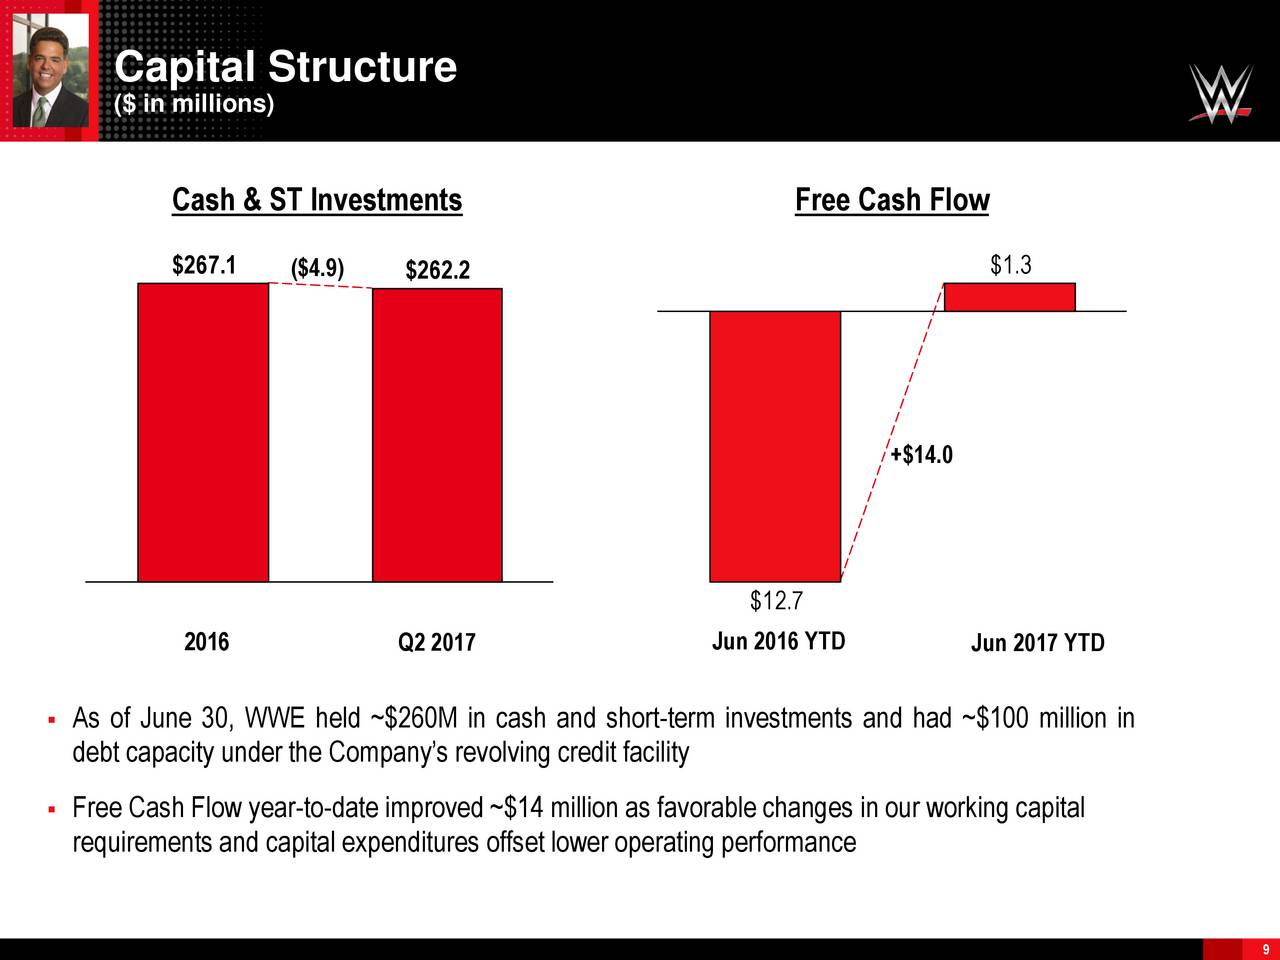 investment and debt capacity